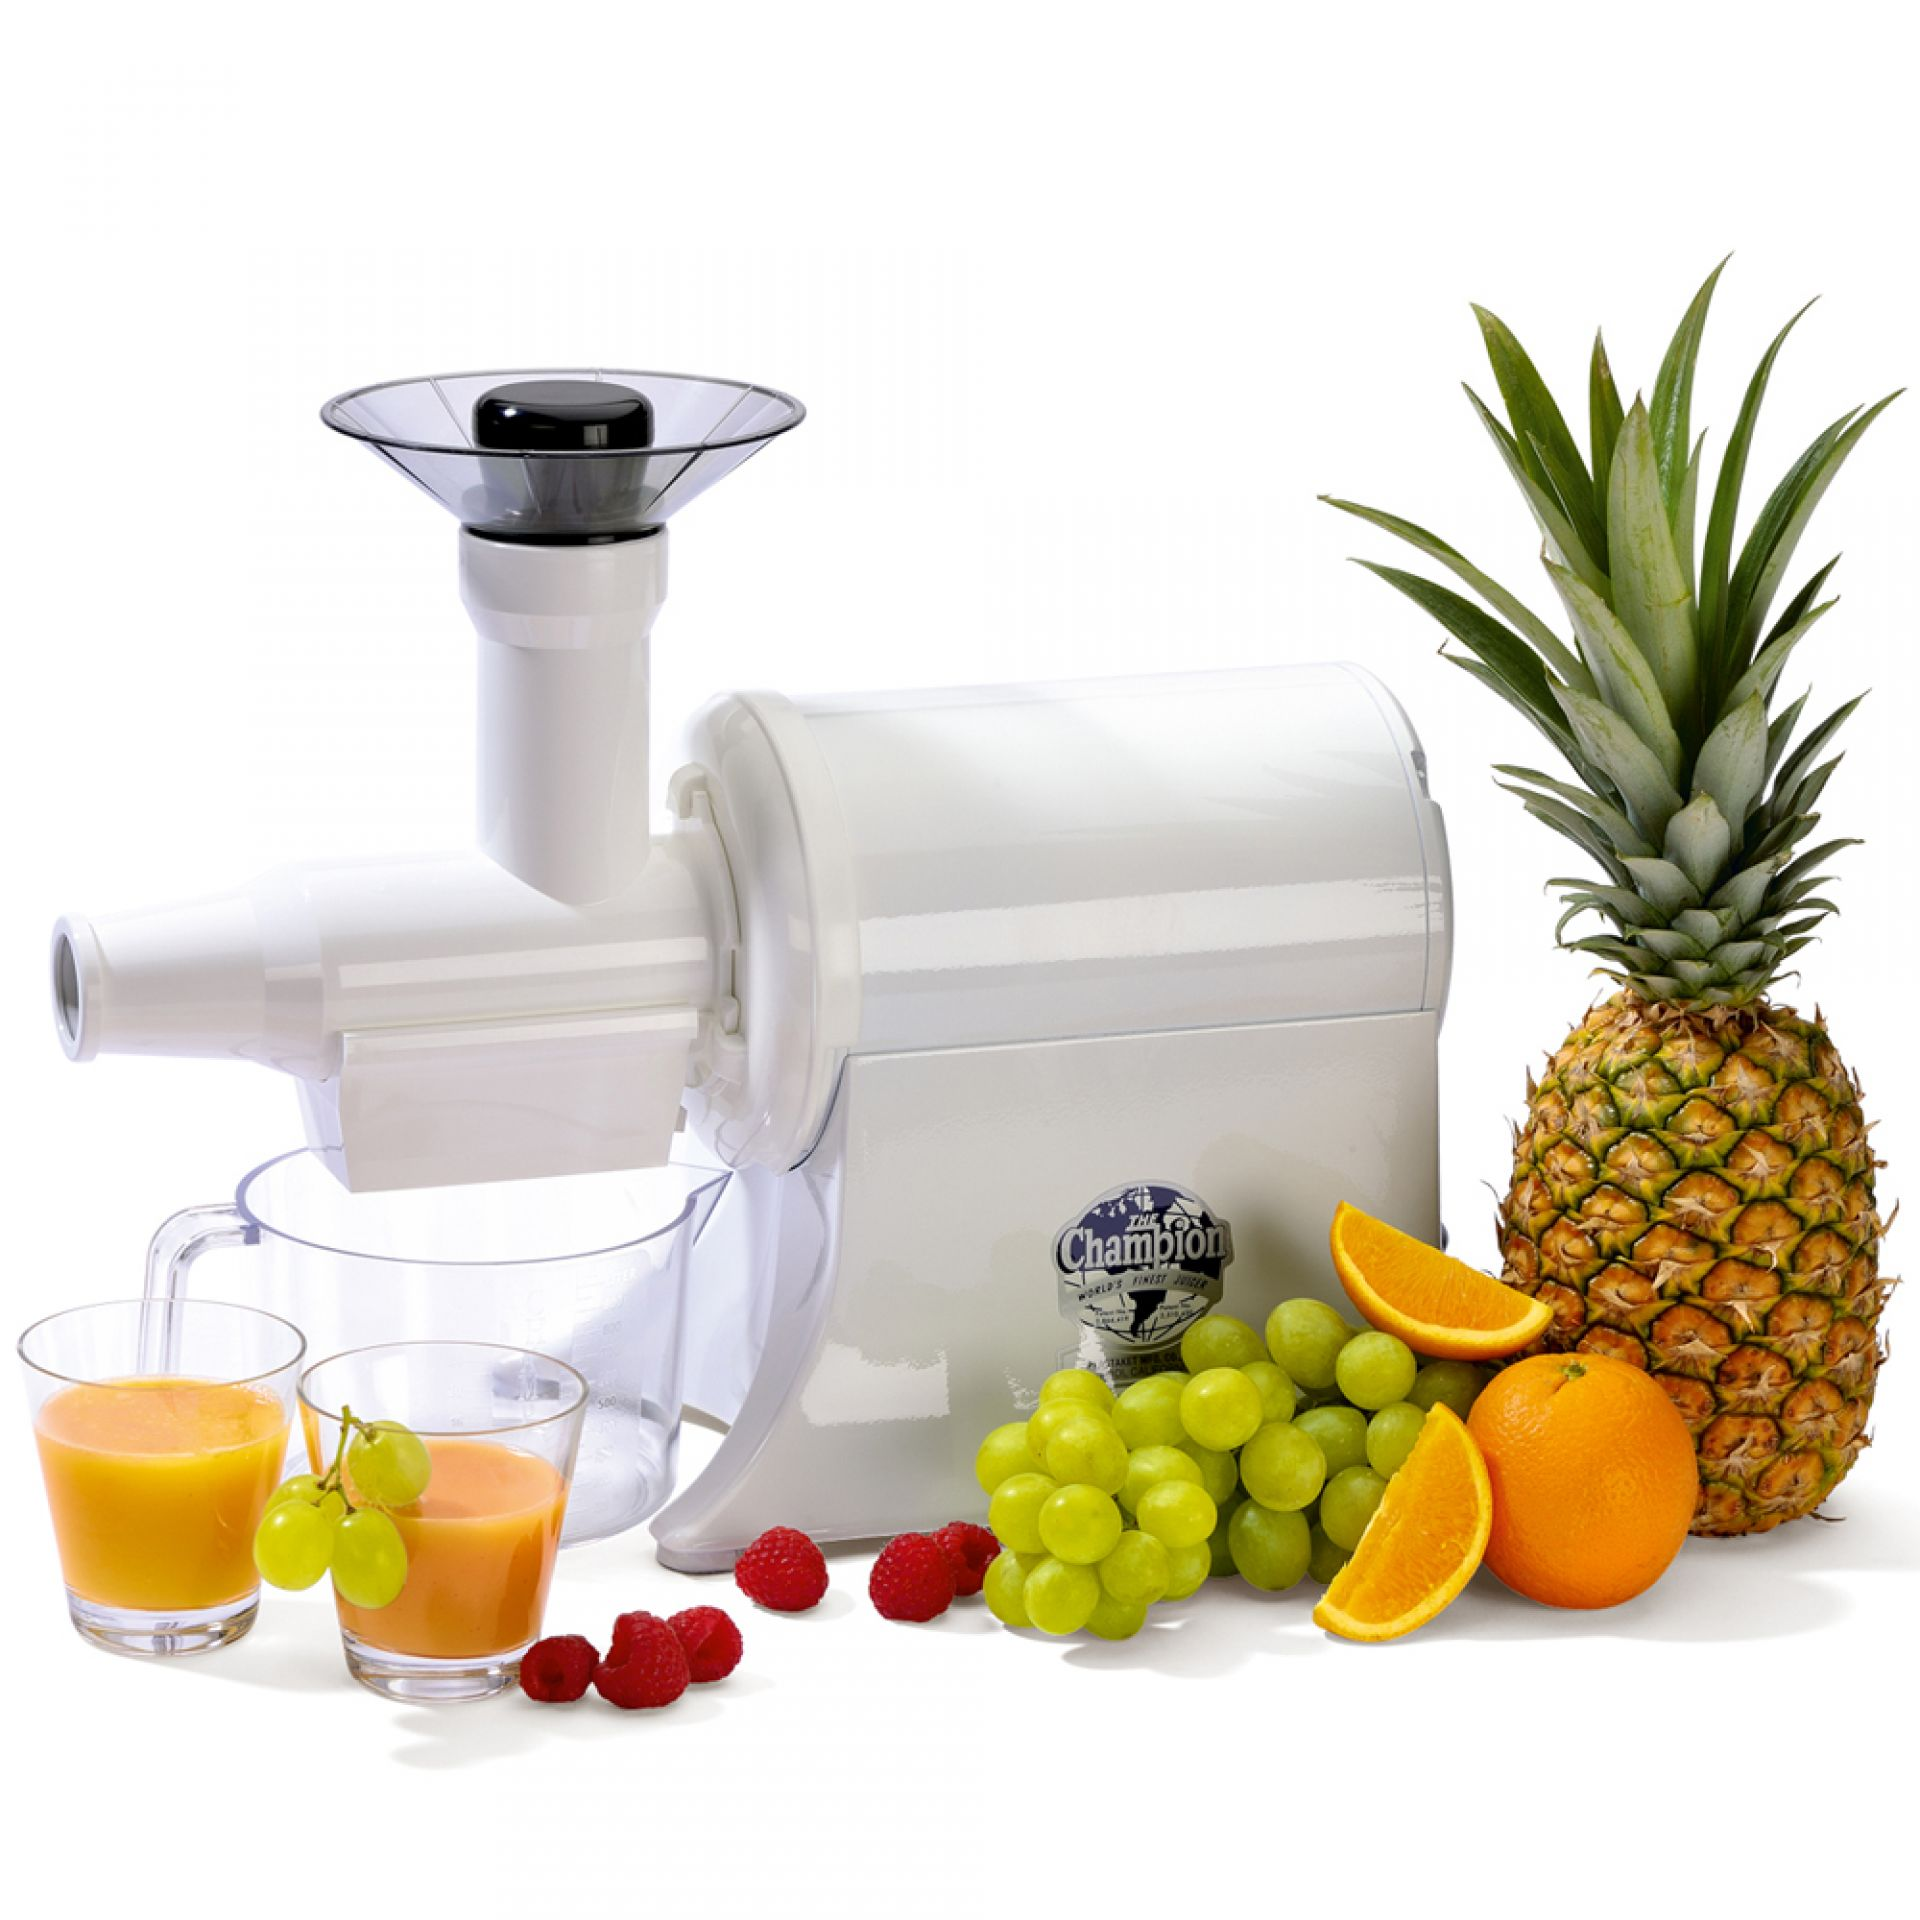 Top 5 Best Champion Juicers – Outstanding Quality Juicers